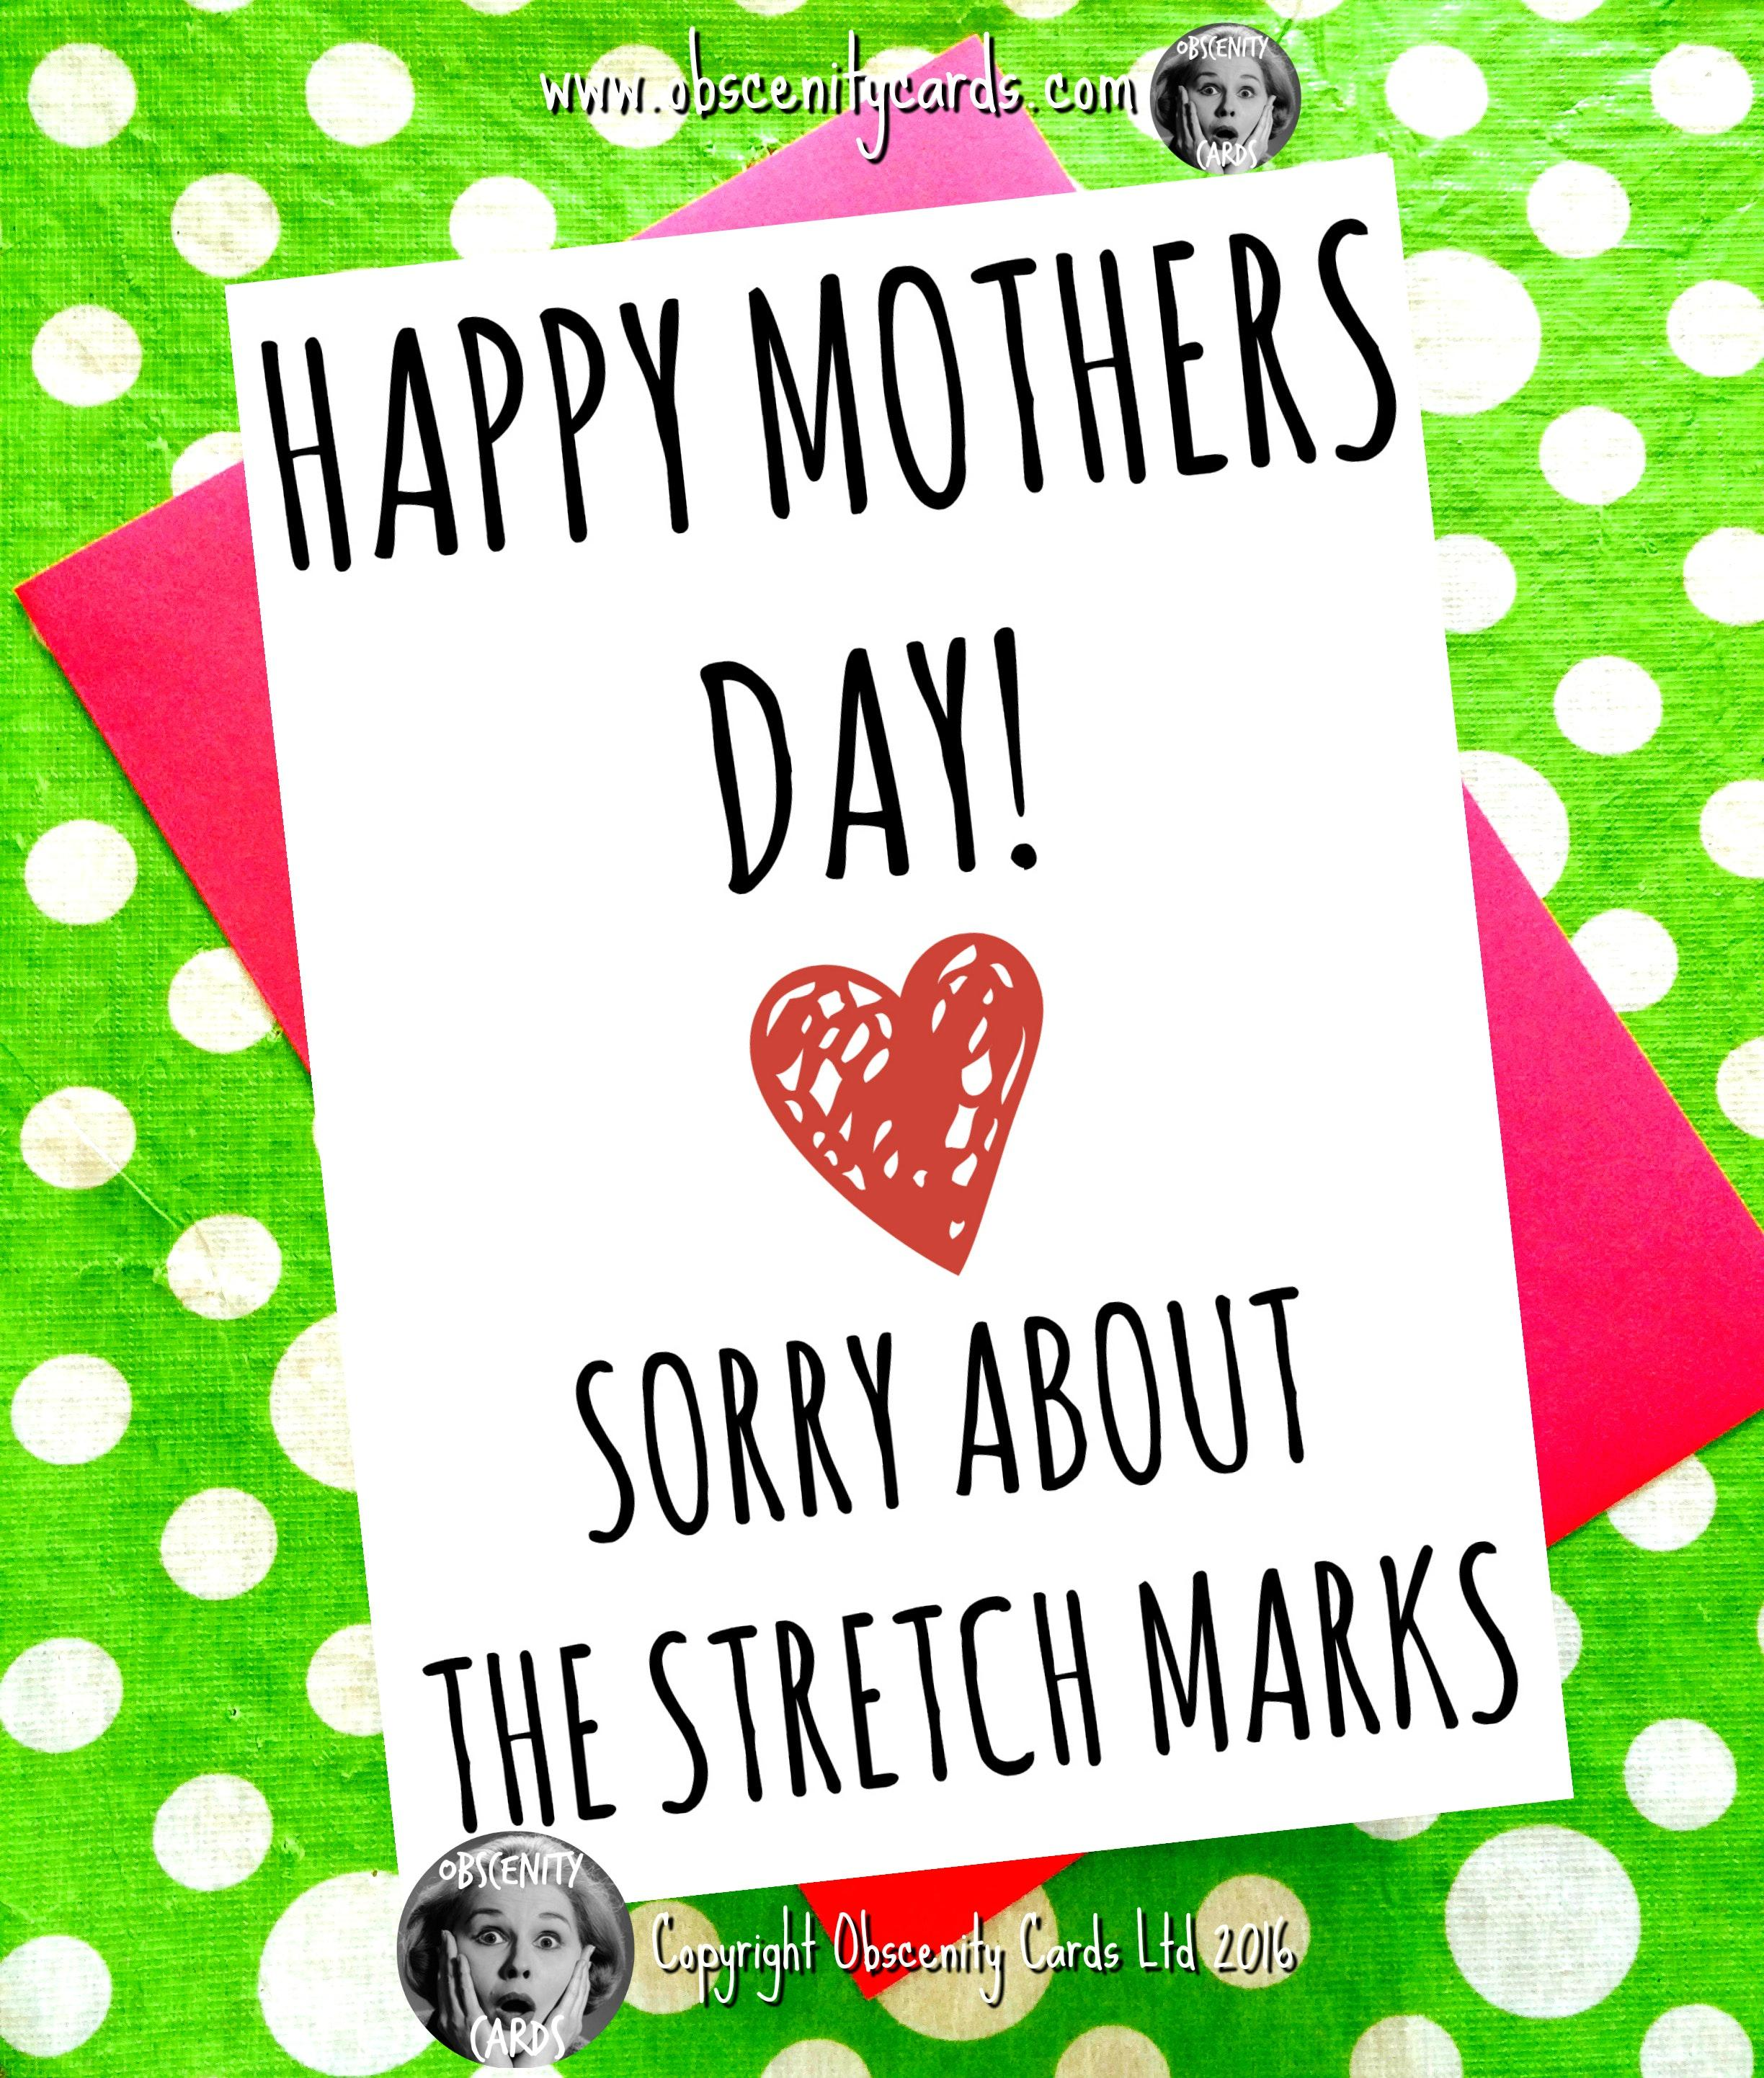 Happy Mothers Day Card - SORRY ABOUT THE STRETCH MARKS